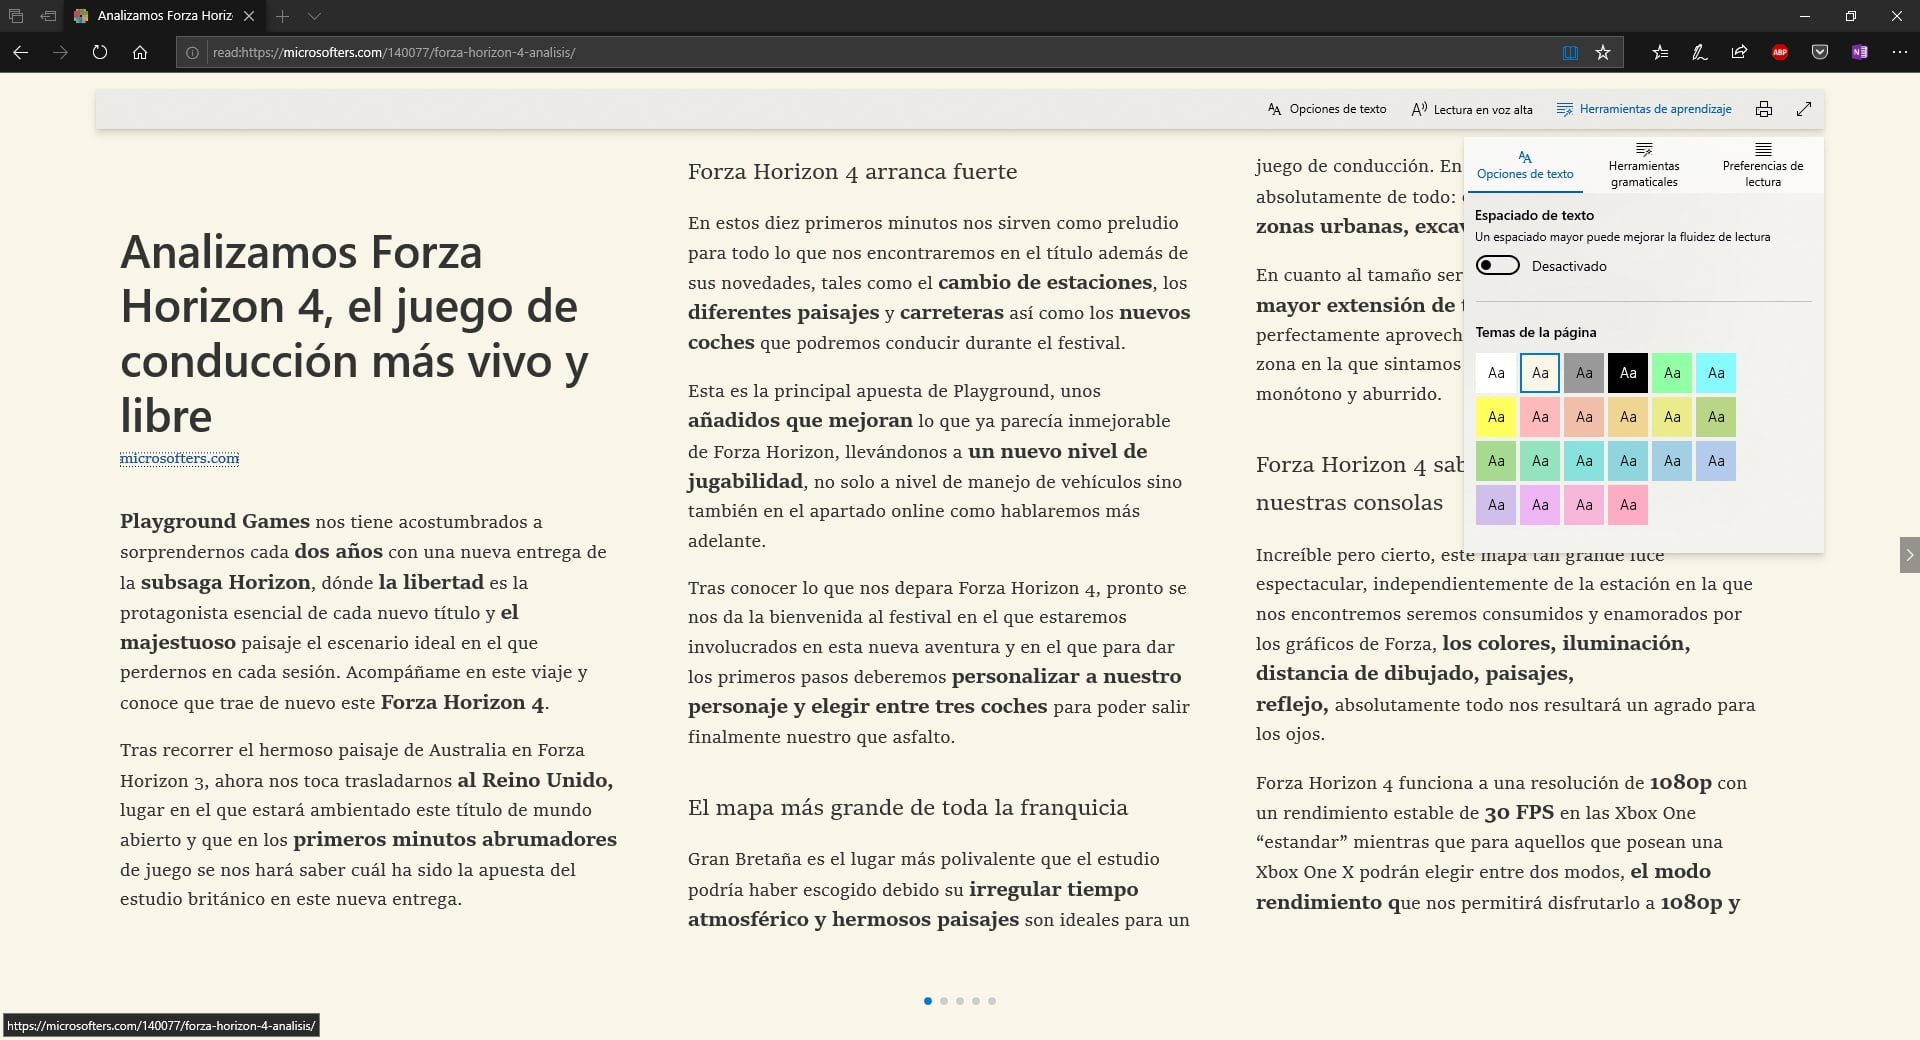 Las novedades de Microsoft Edge con Windows 10 October 2018 Update